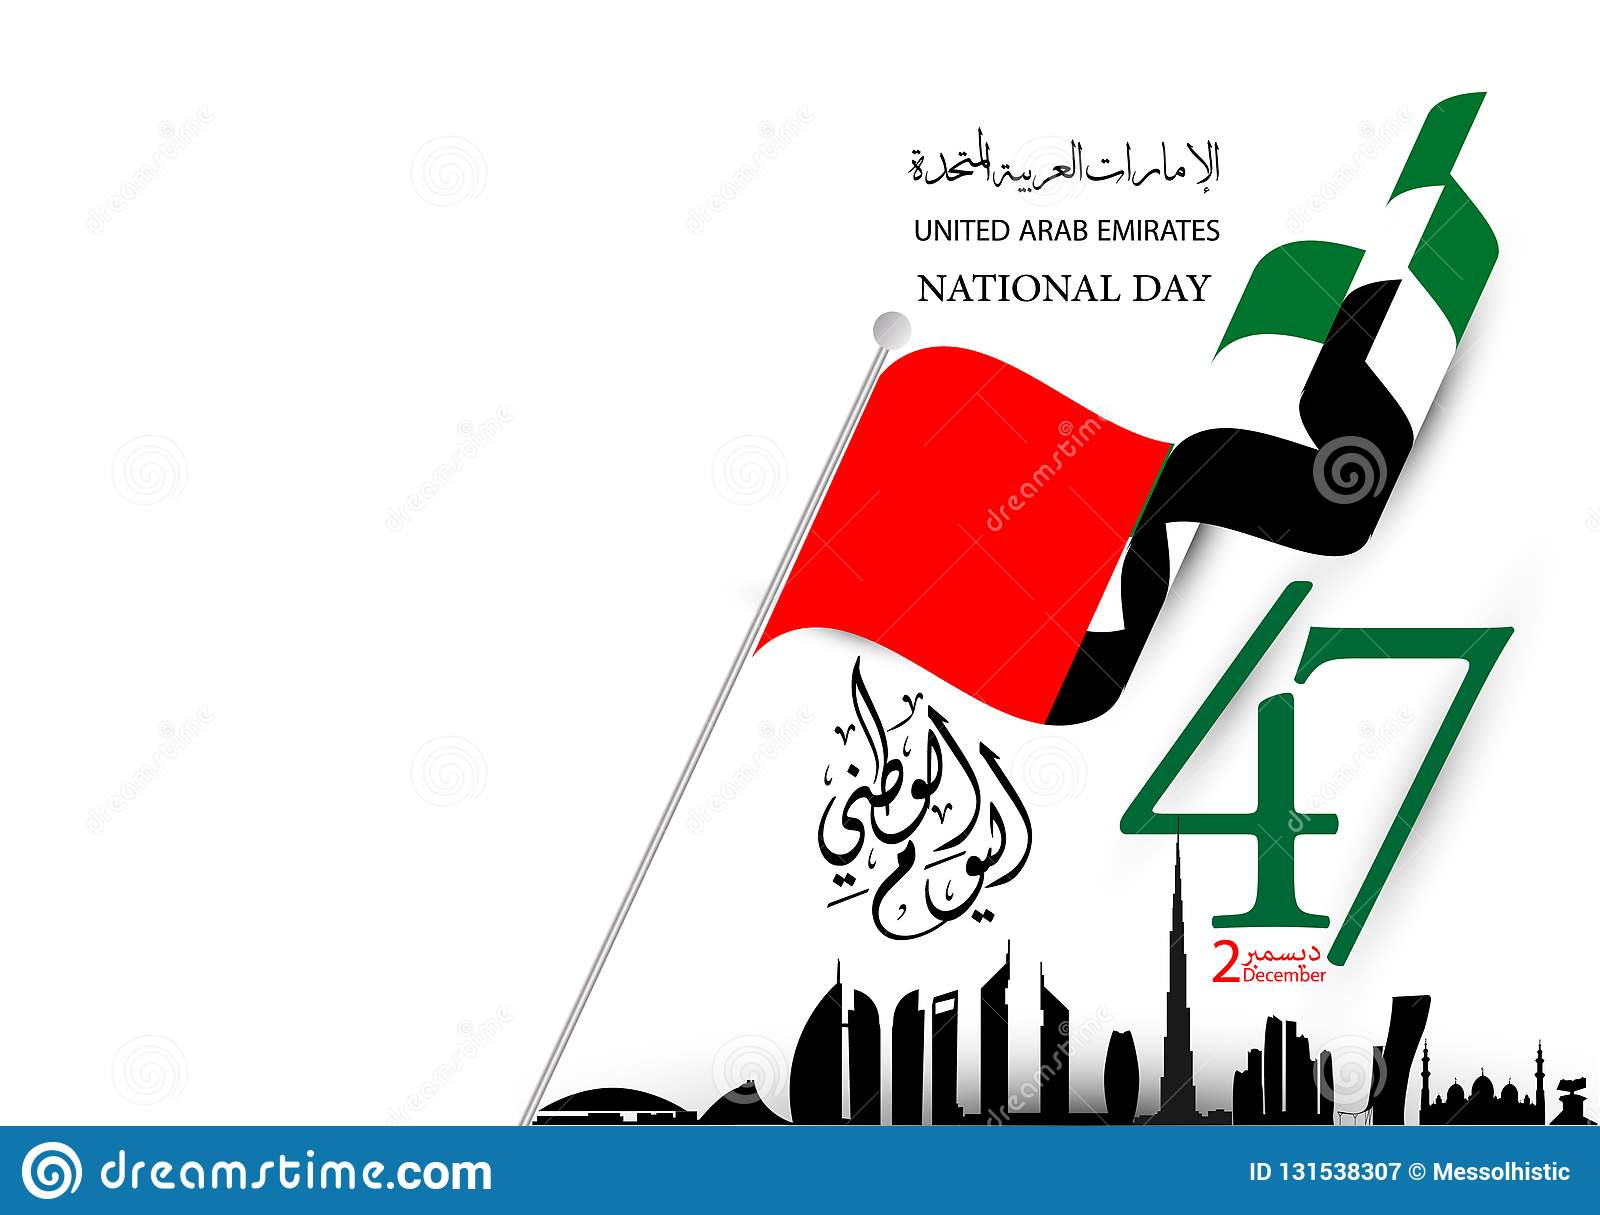 United Arab Emirates National Day , Arabic Calligraphy Translation